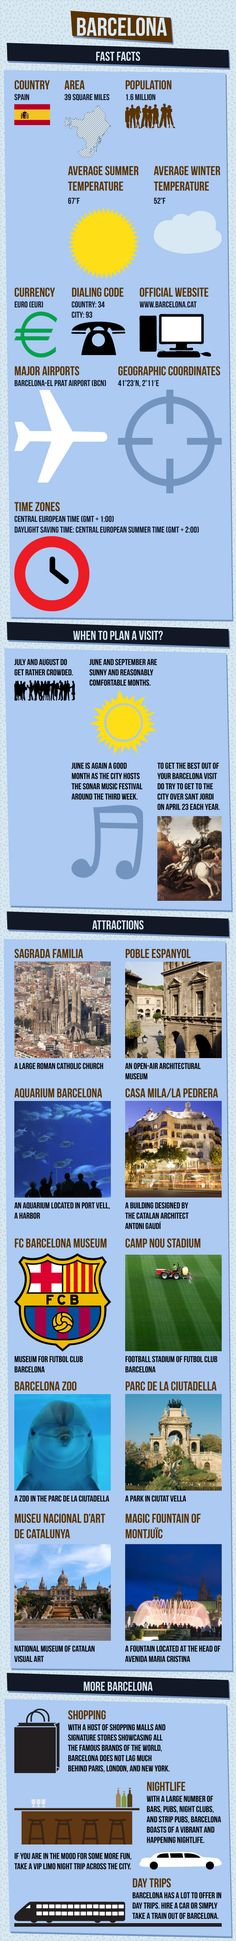 Barcelona Travel Infographic - best guide to be taken while traveling to Barcelona